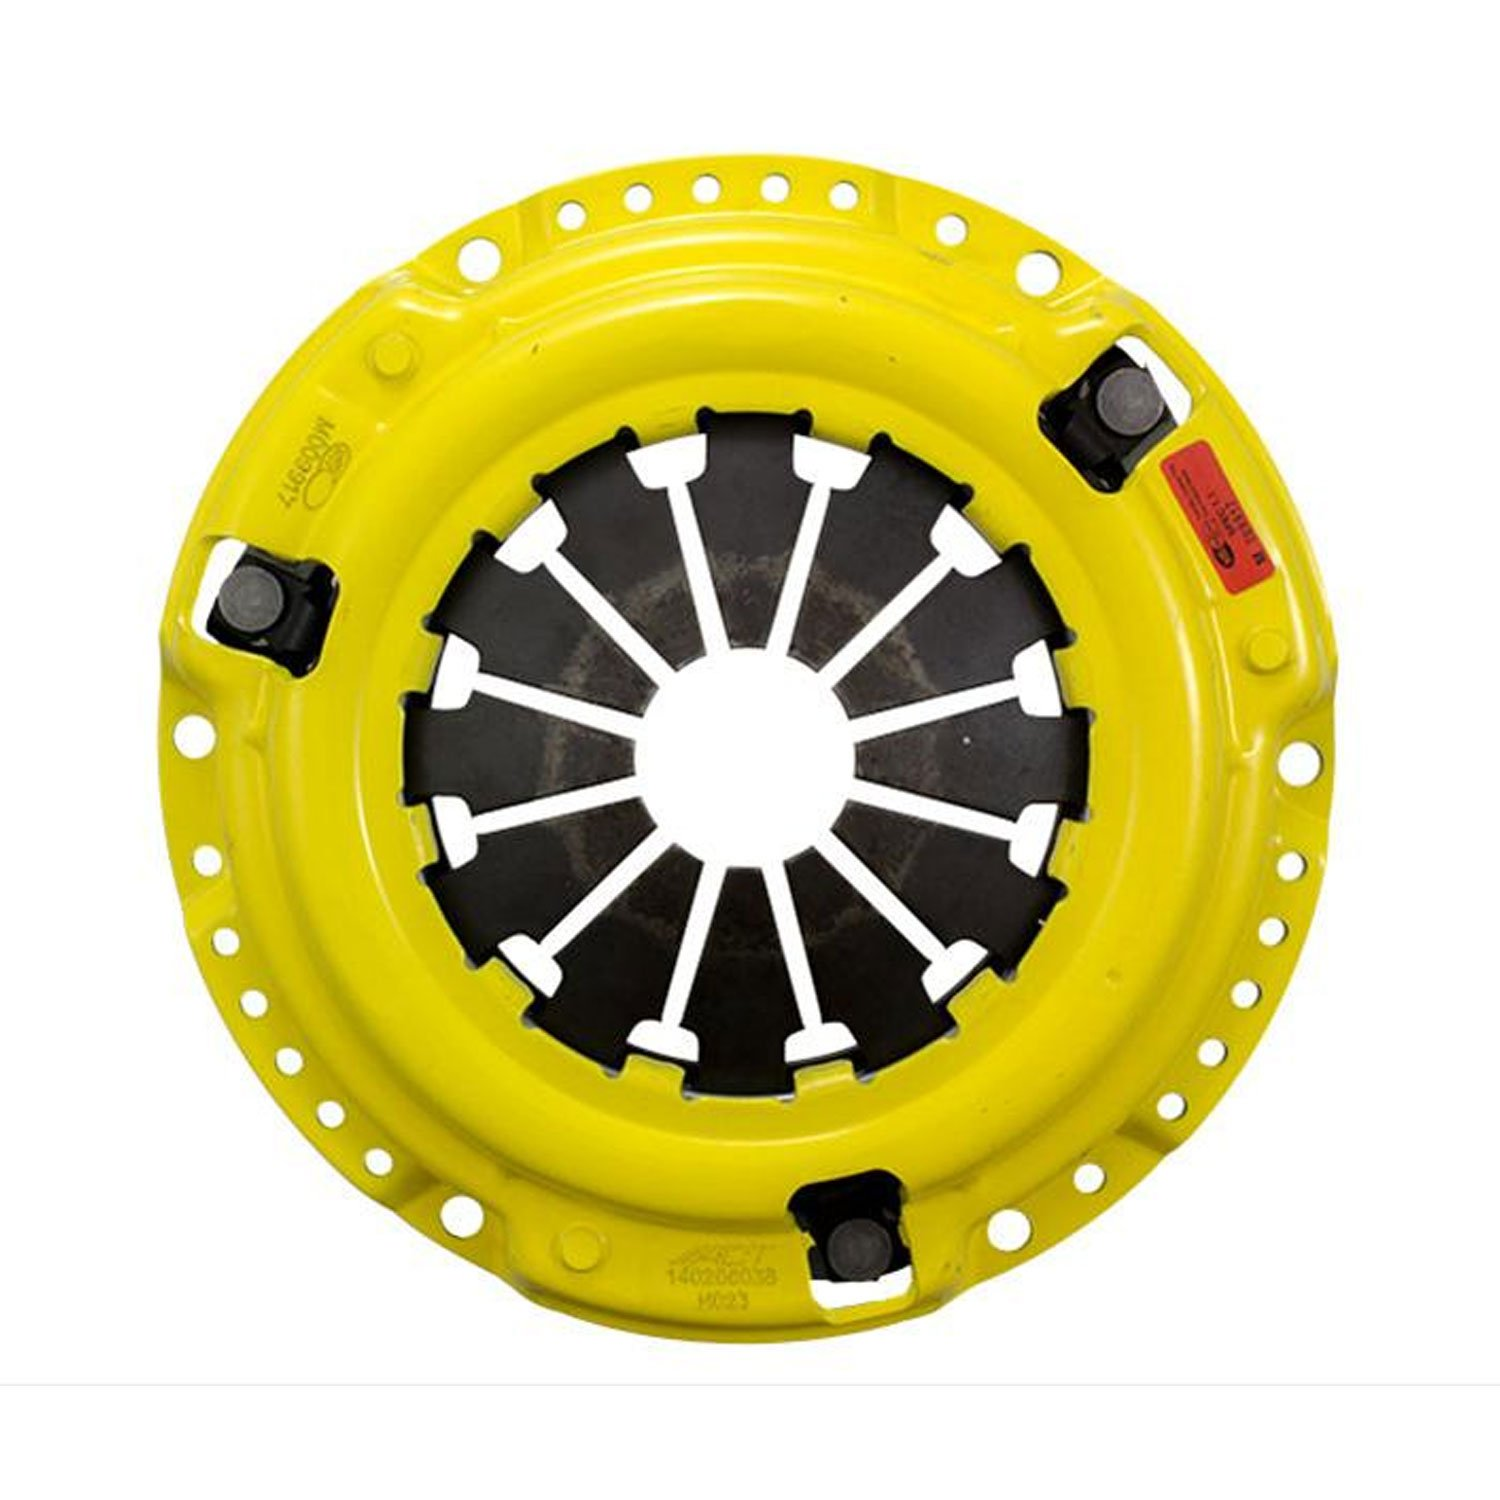 ACT Advanced Clutch Technology MZ010 Heavy Duty Performance Pressure Plate, For Select Vehicles